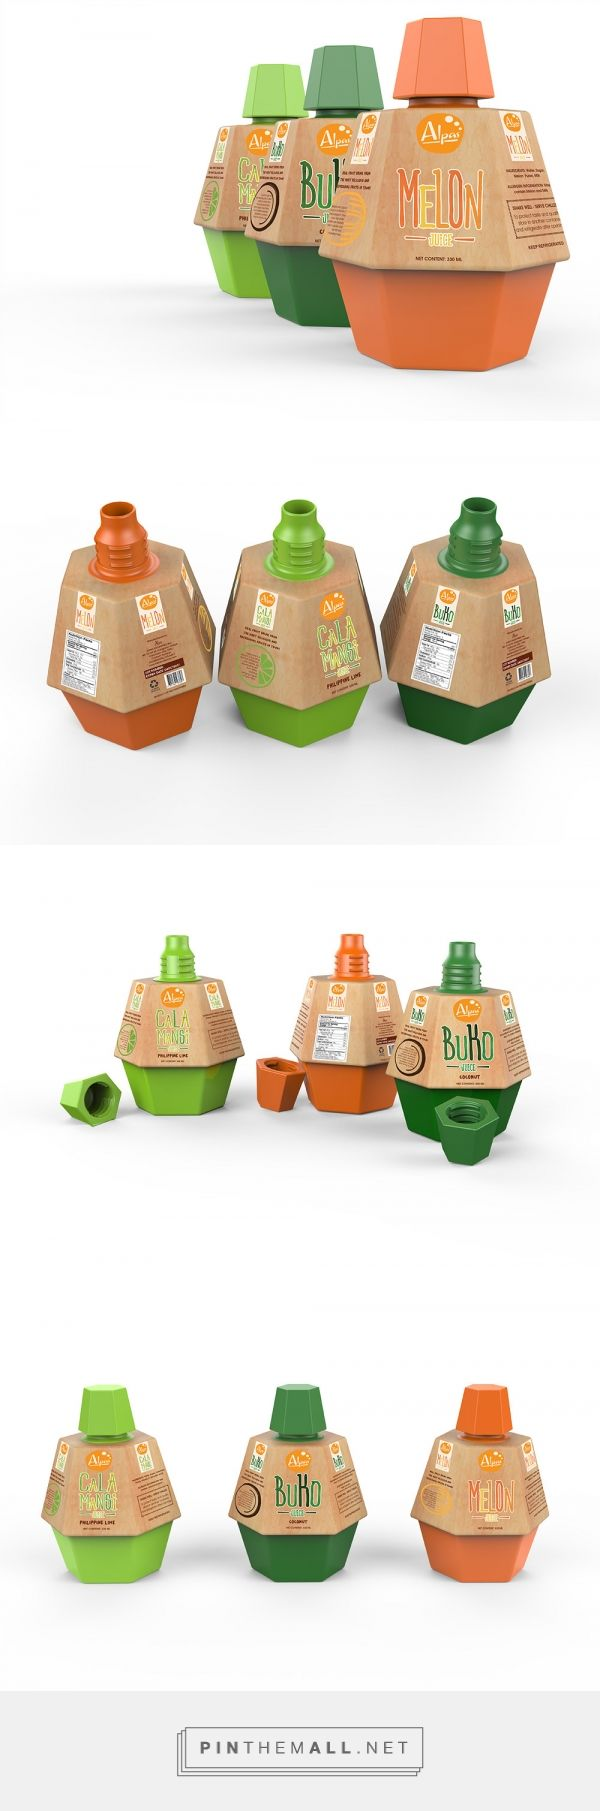 105869 best Packaging Pick Of The Day images on Pinterest ...